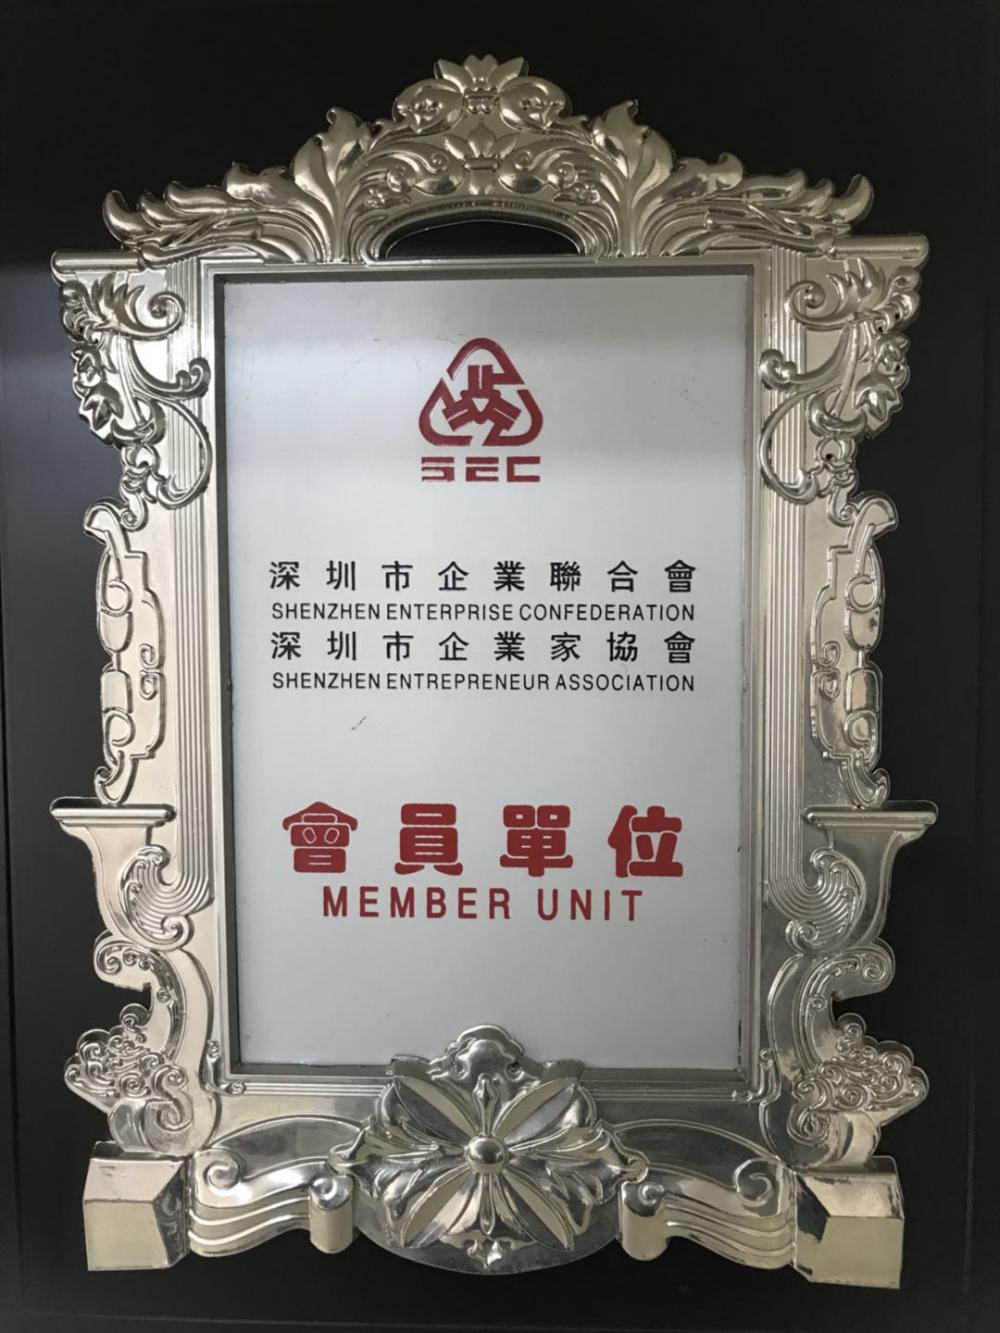 SHENZHEN ENTERPRISE CONFEDERATION SHENZHEN ENTREPRENEUR ASSOCIATION MEMBER UNIT